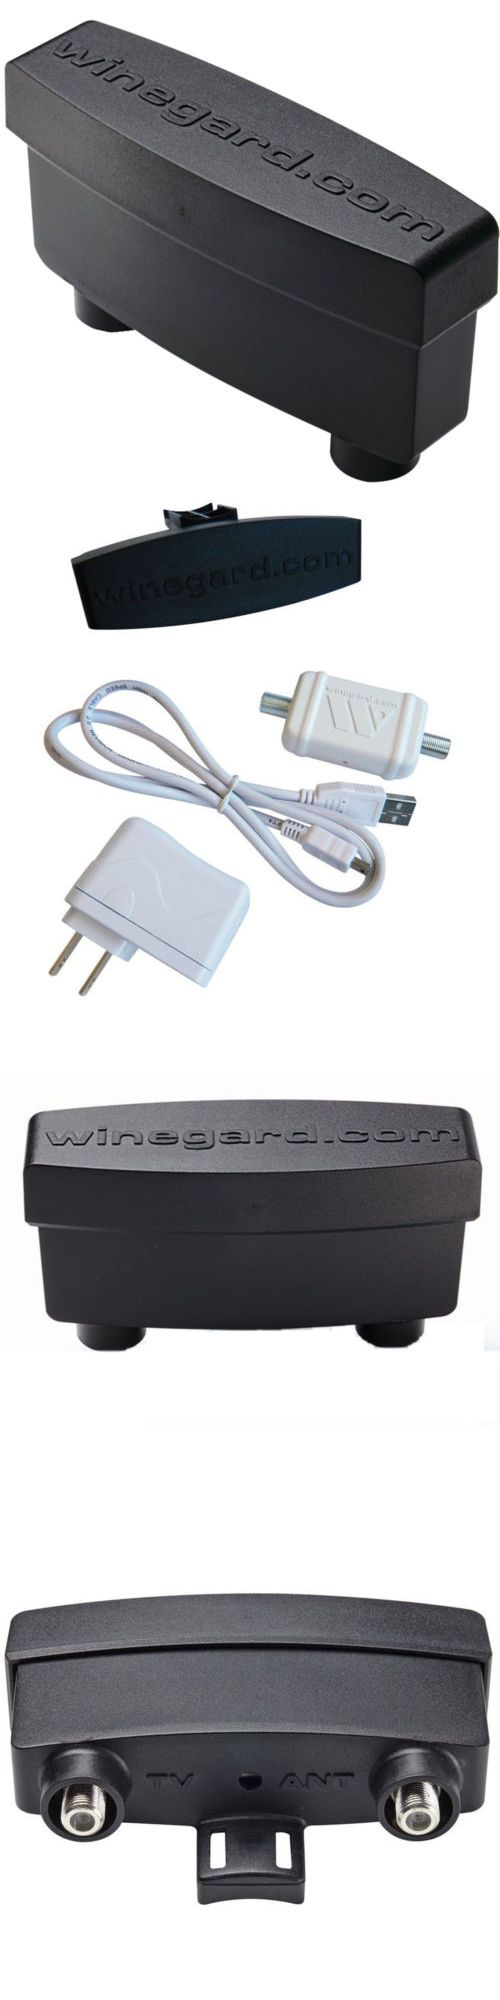 Antennas and Dishes: Winegard Boost Xt Outdoor Digital Tv Antenna Preamplifier | Lna-200 -> BUY IT NOW ONLY: $44.25 on eBay!